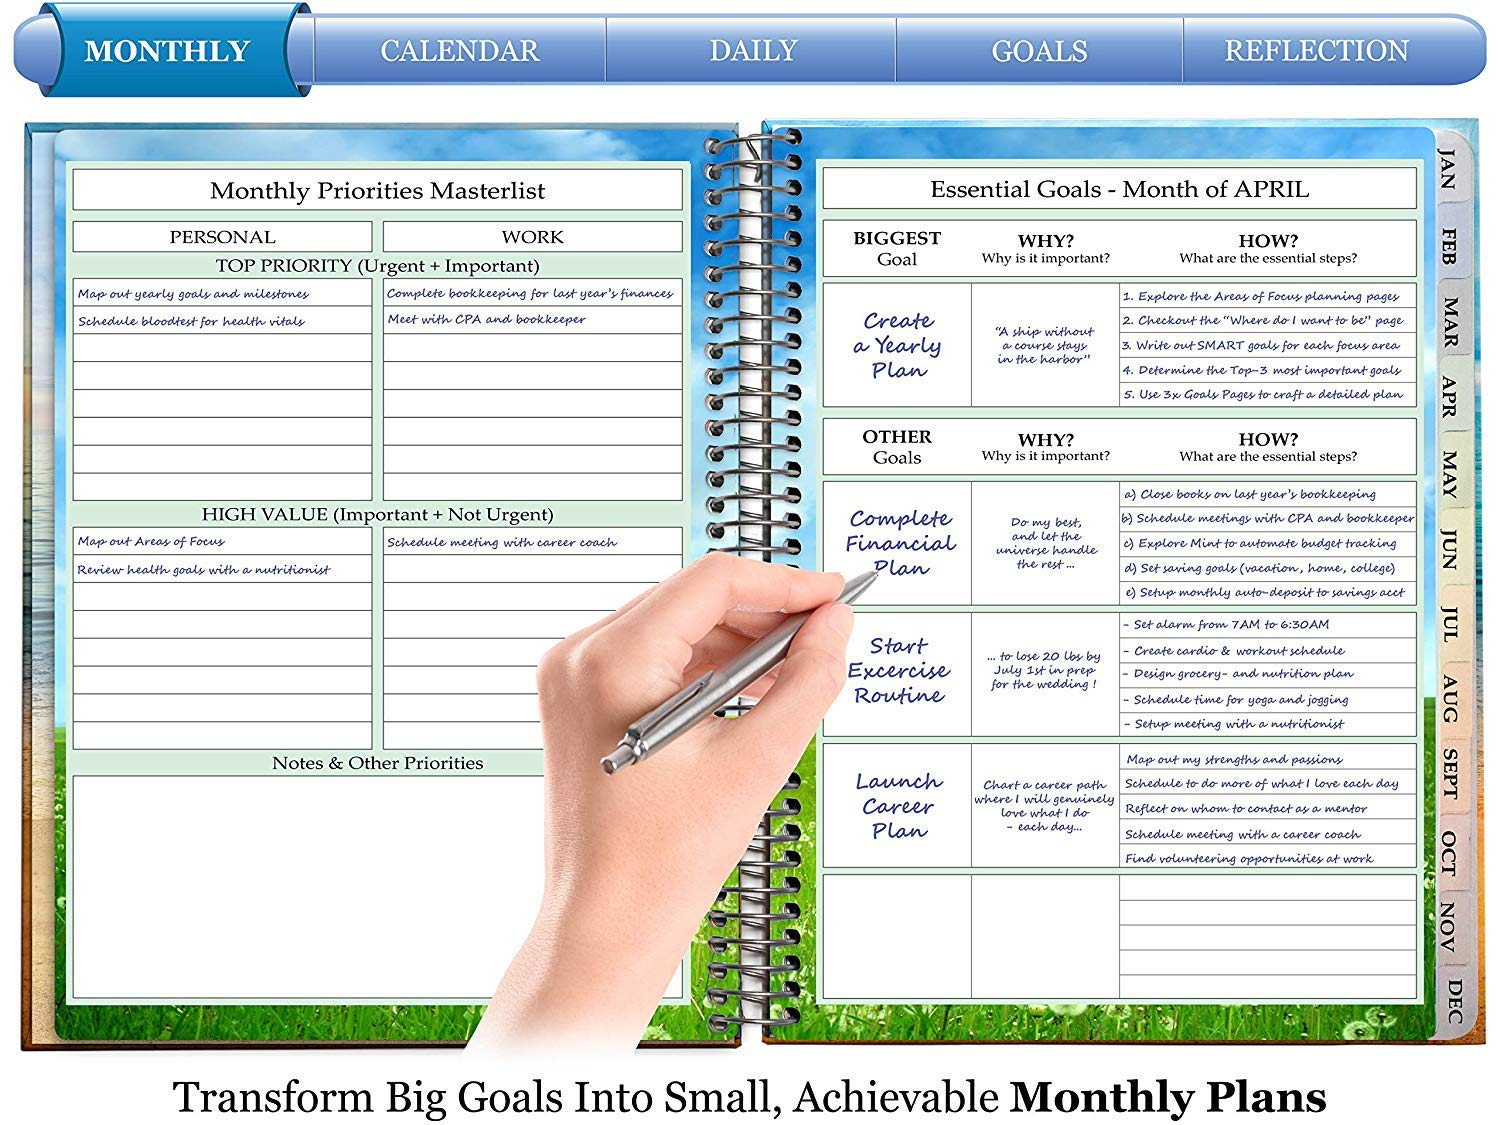 Tools4wisdom Planner April 2019-2020 8.5'' x 11'' Hardcover by Tools4Wisdom (Image #2)